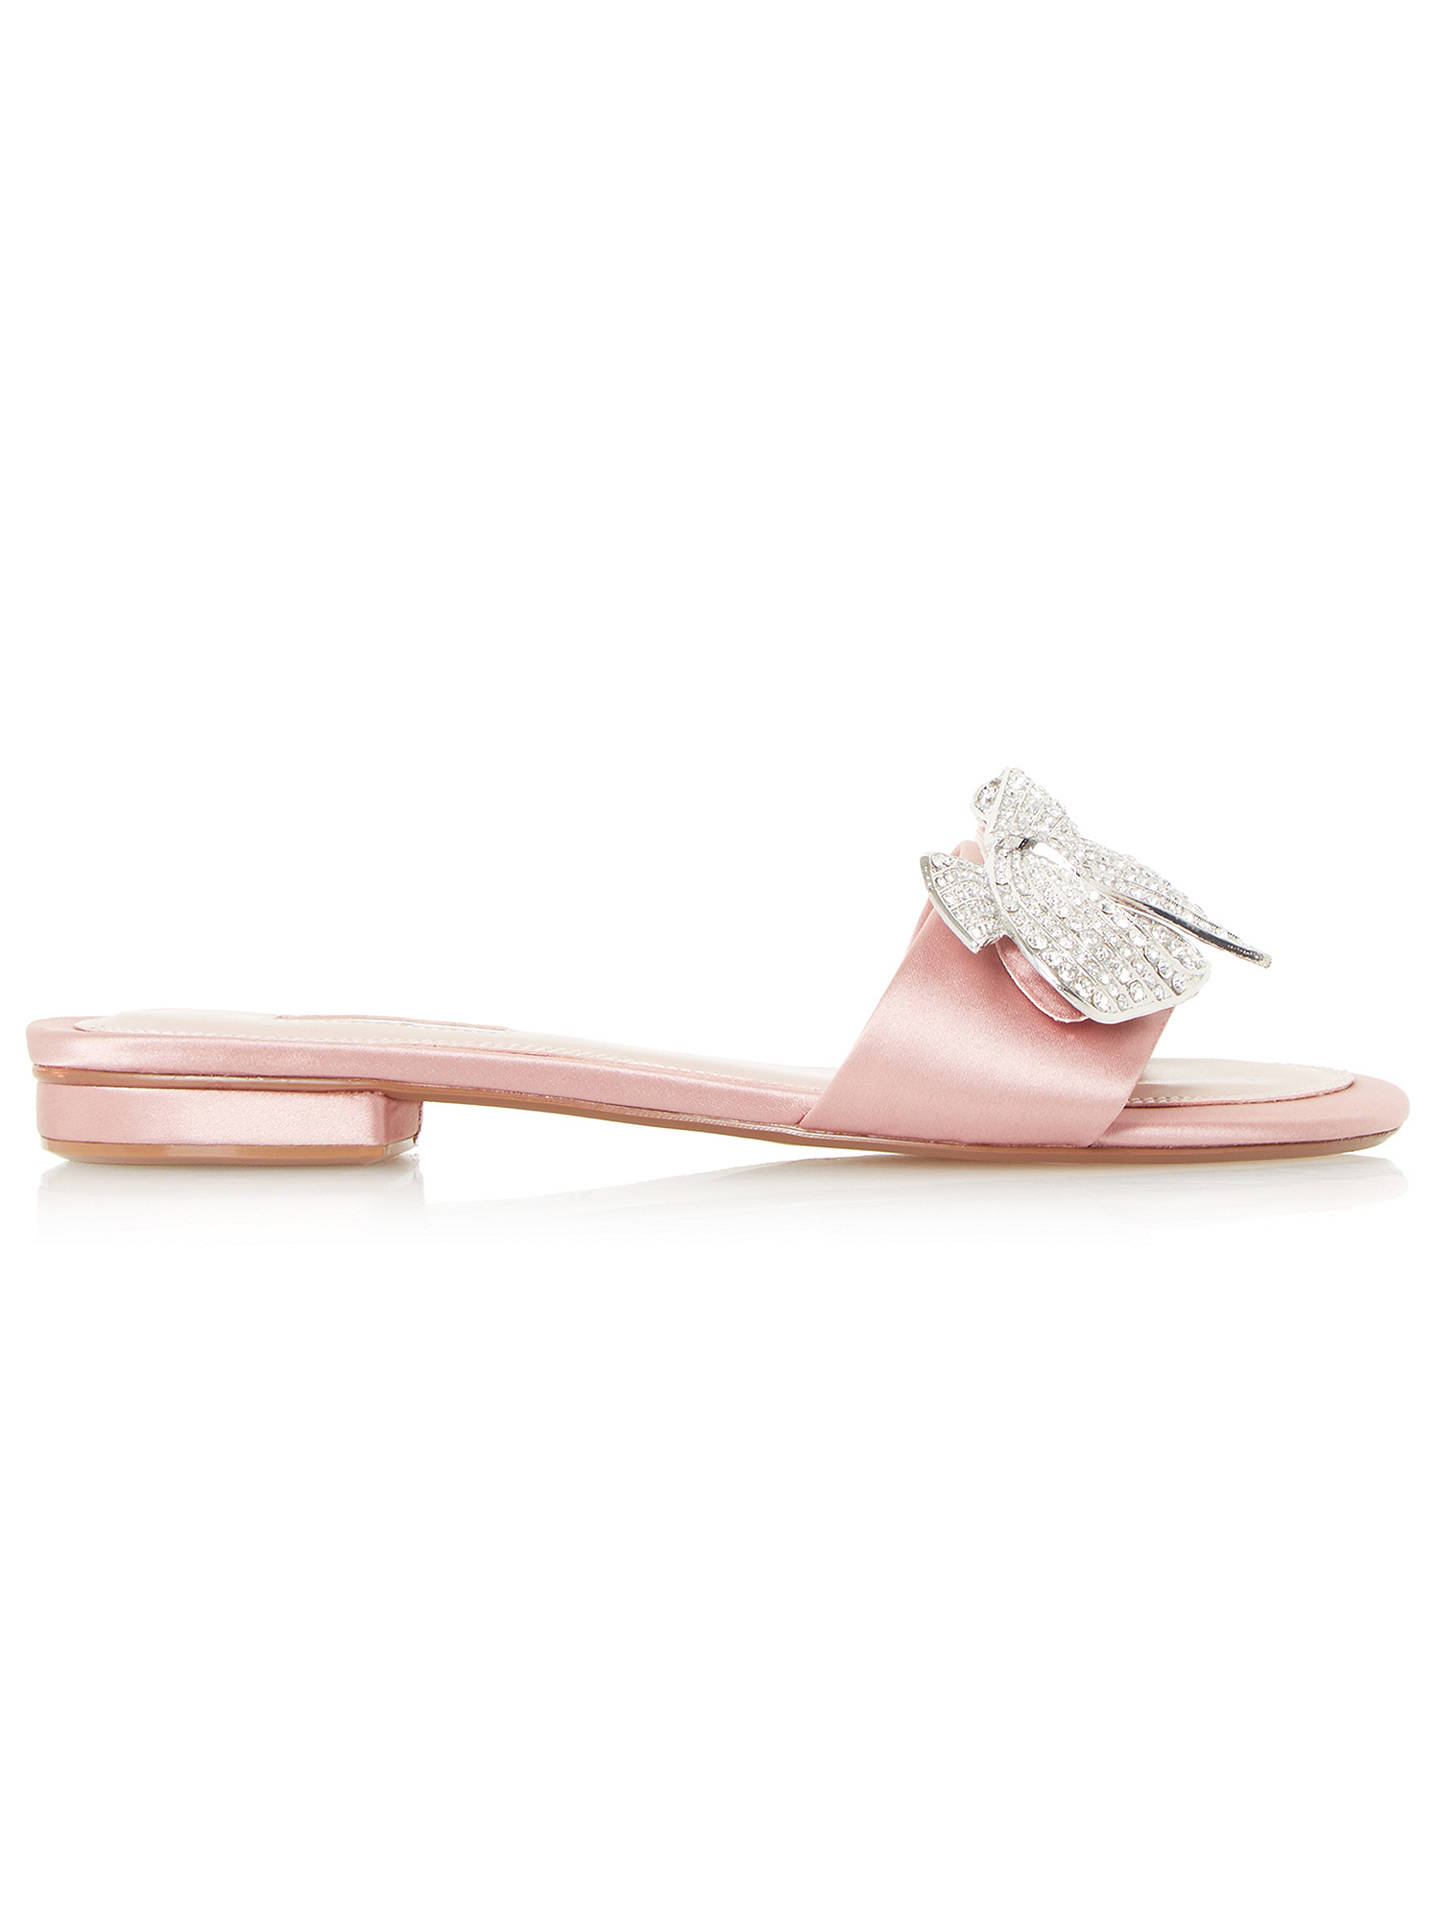 BuyDune Nixi Embellished Strap Slider Sandals, Blush, 5 Online at johnlewis.com